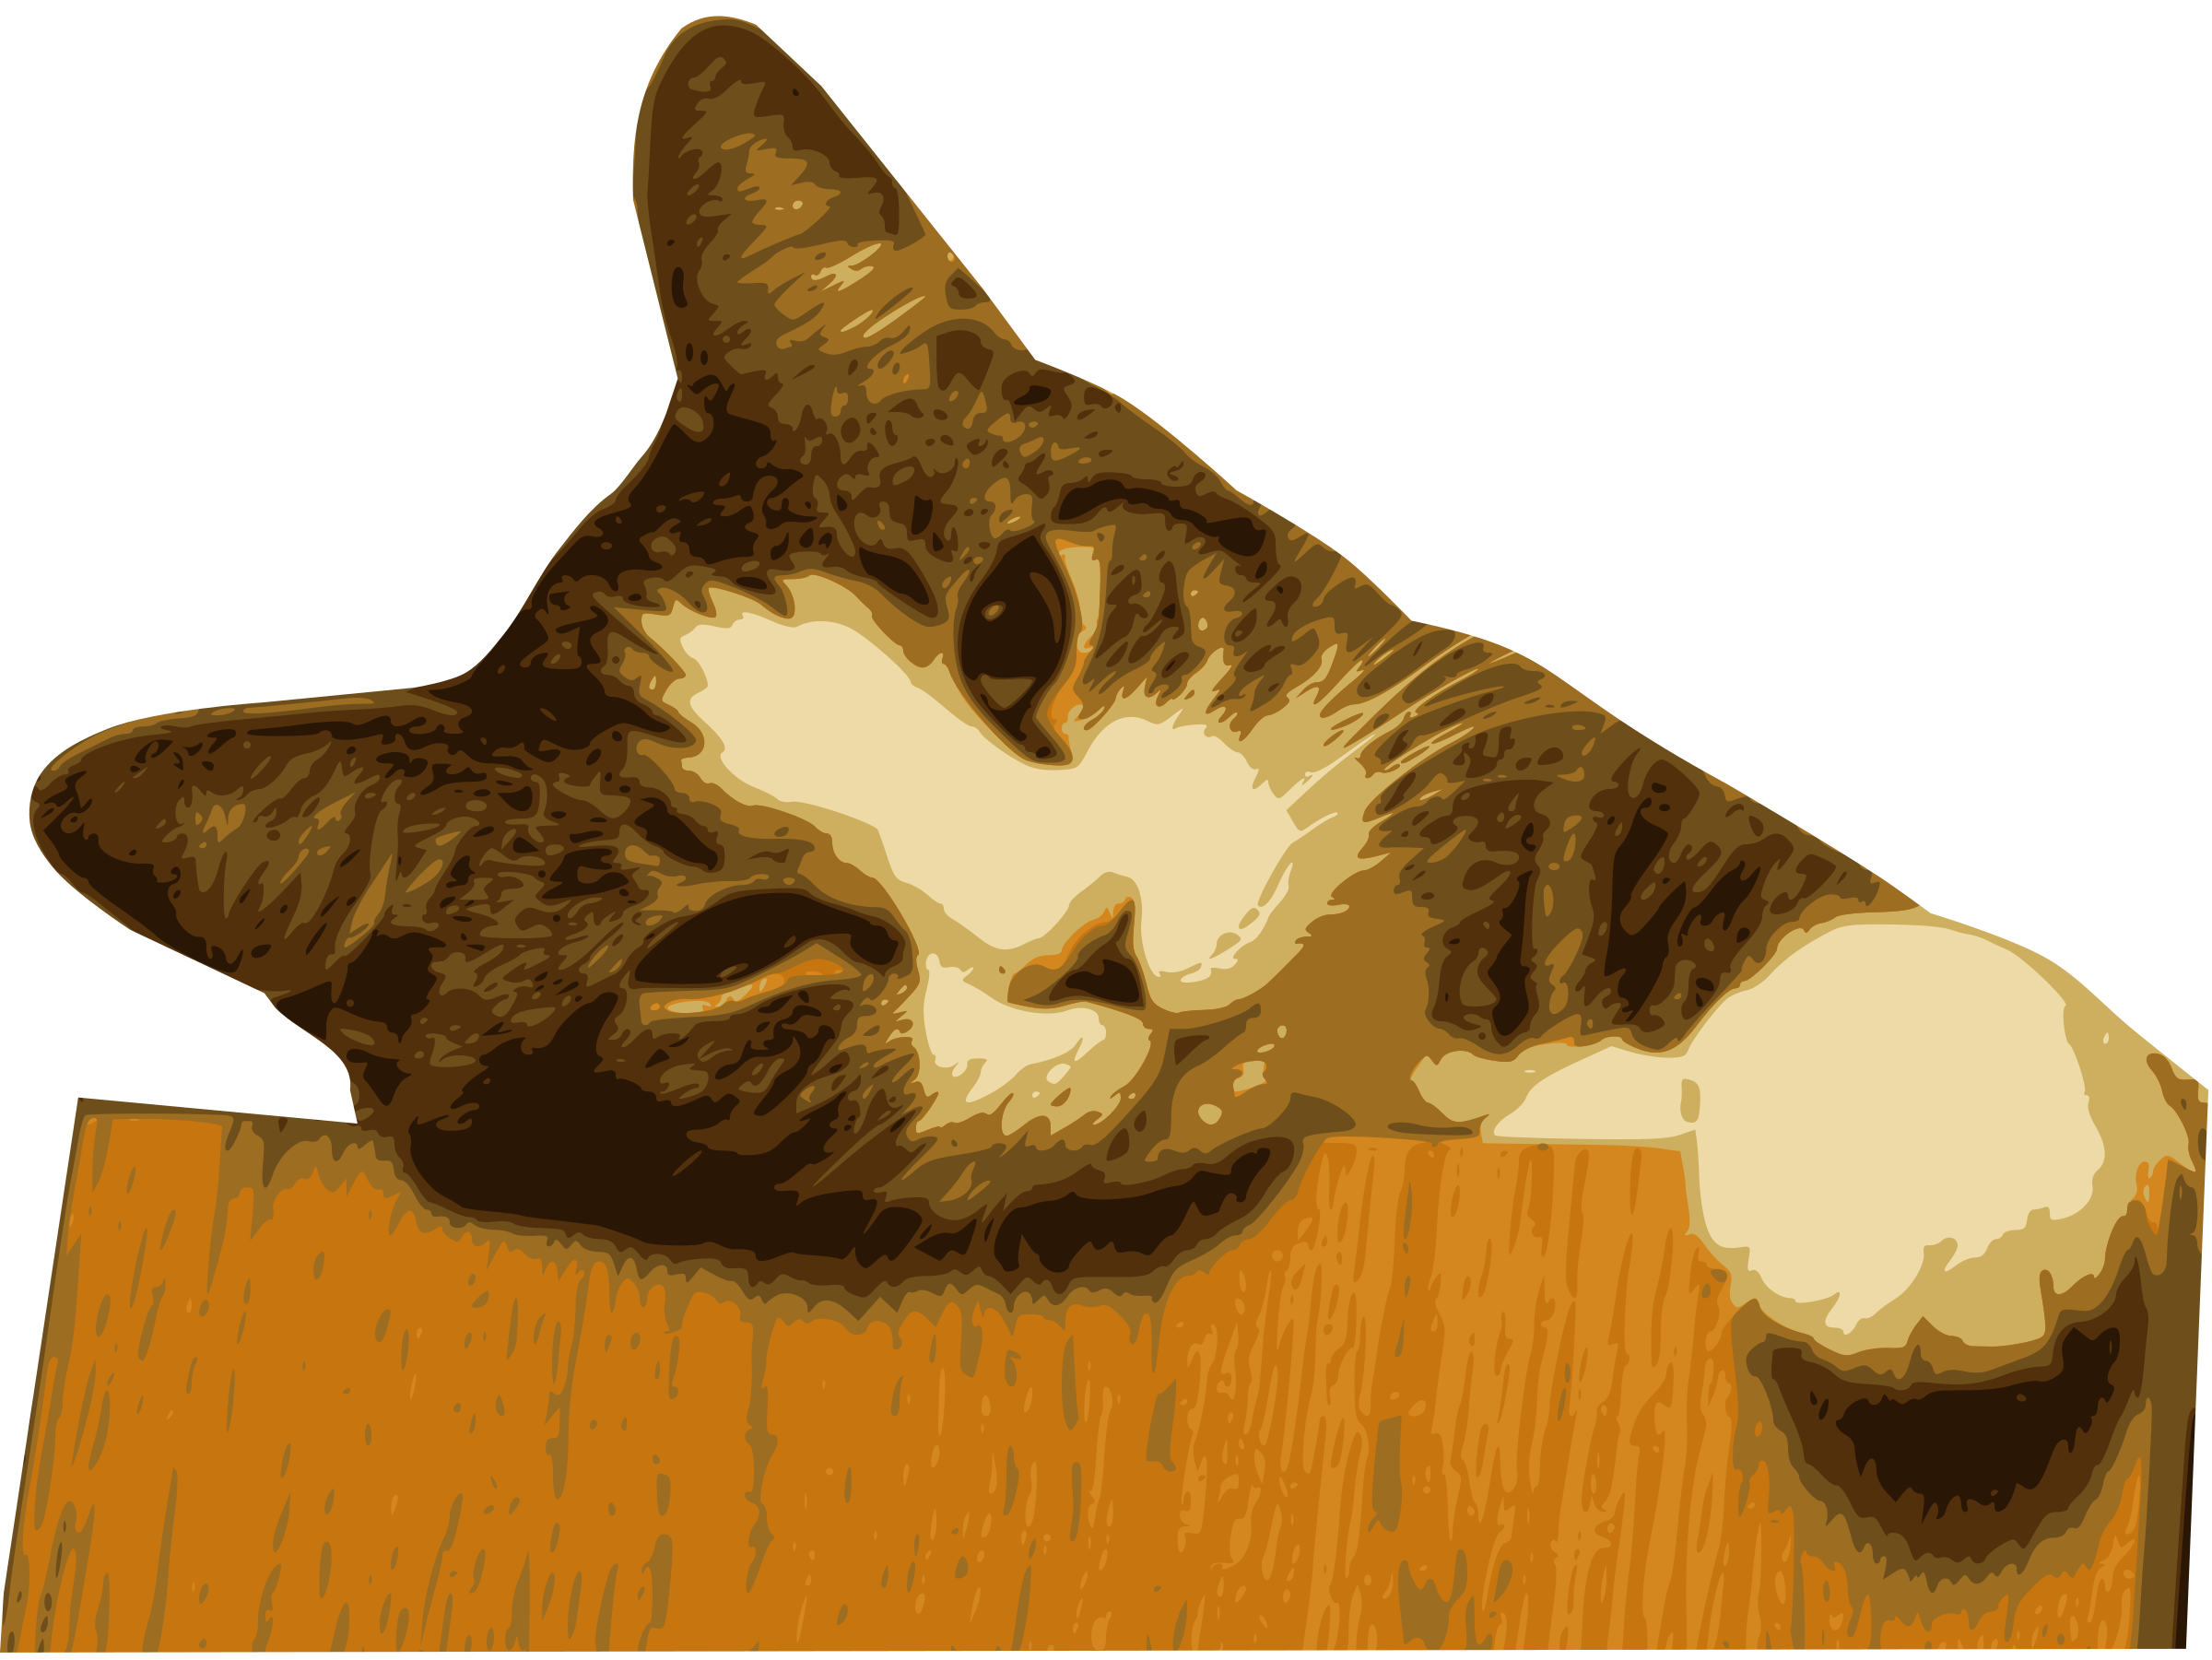 Cat on table clipart clip library Clipart - Relaxed cat (bg removed) clip library